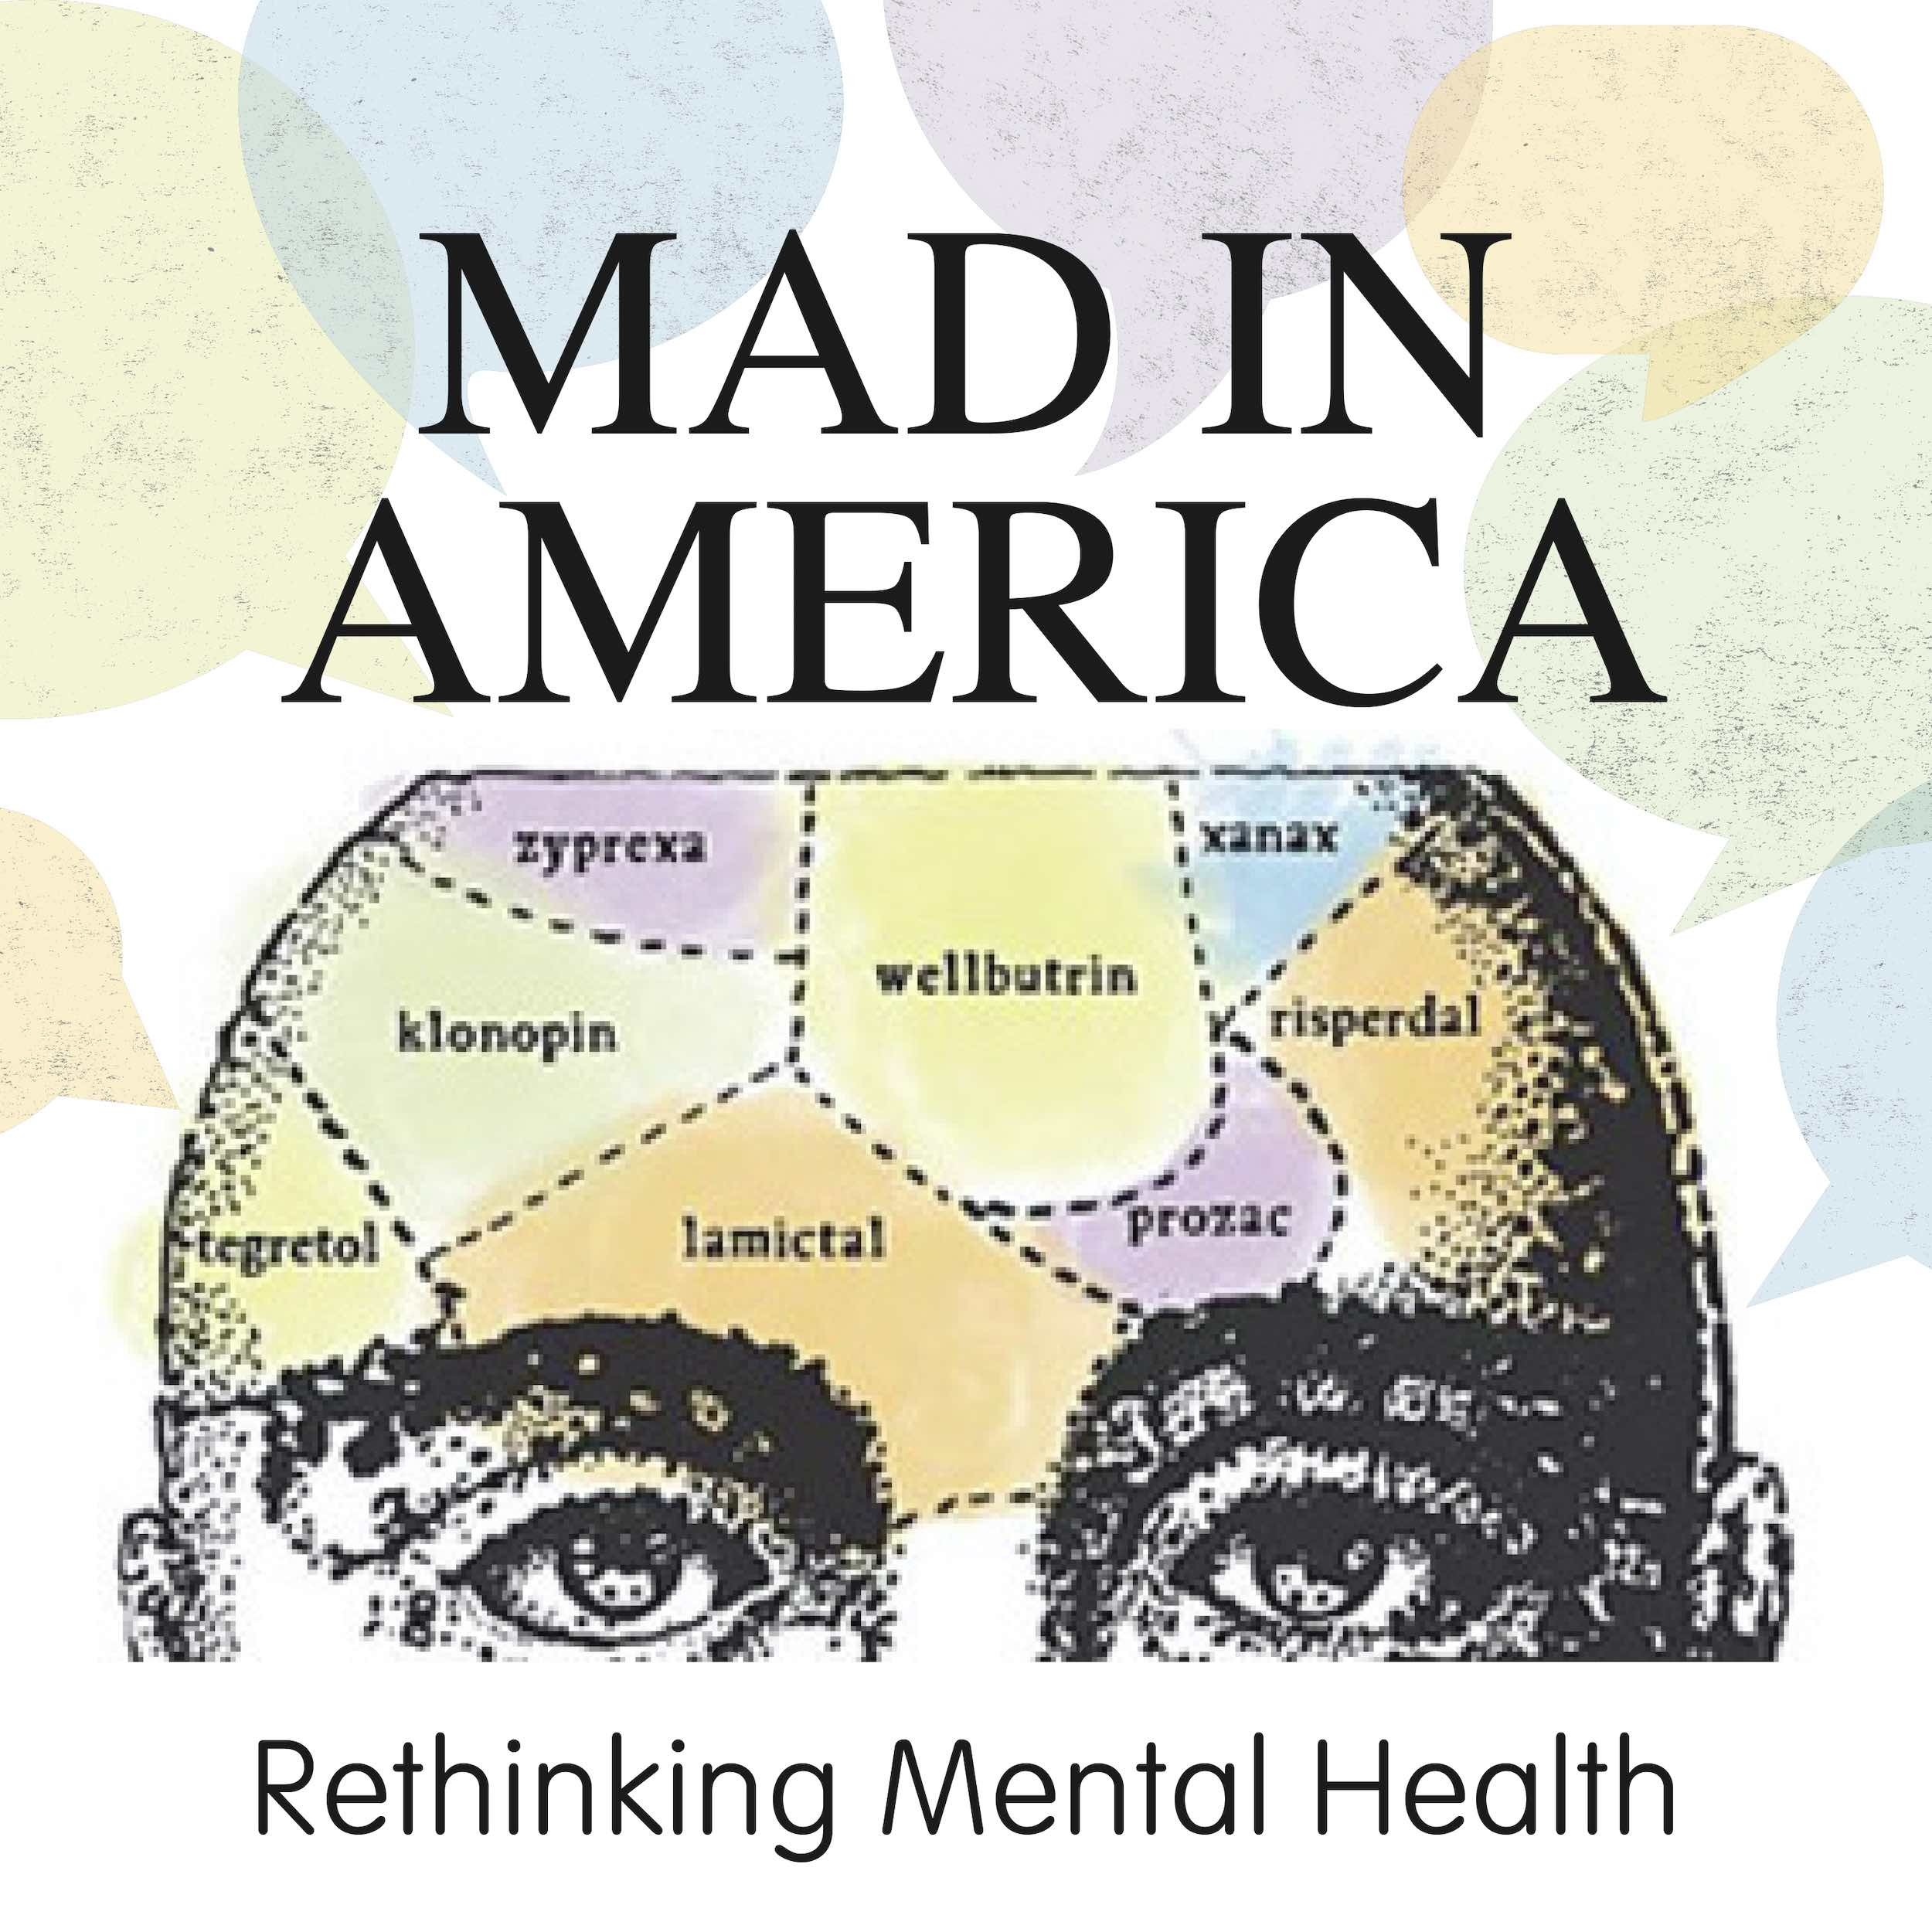 Mad in America: Rethinking Mental Health - Thomas Teo - Fascist Subjectivity and the Subhuman